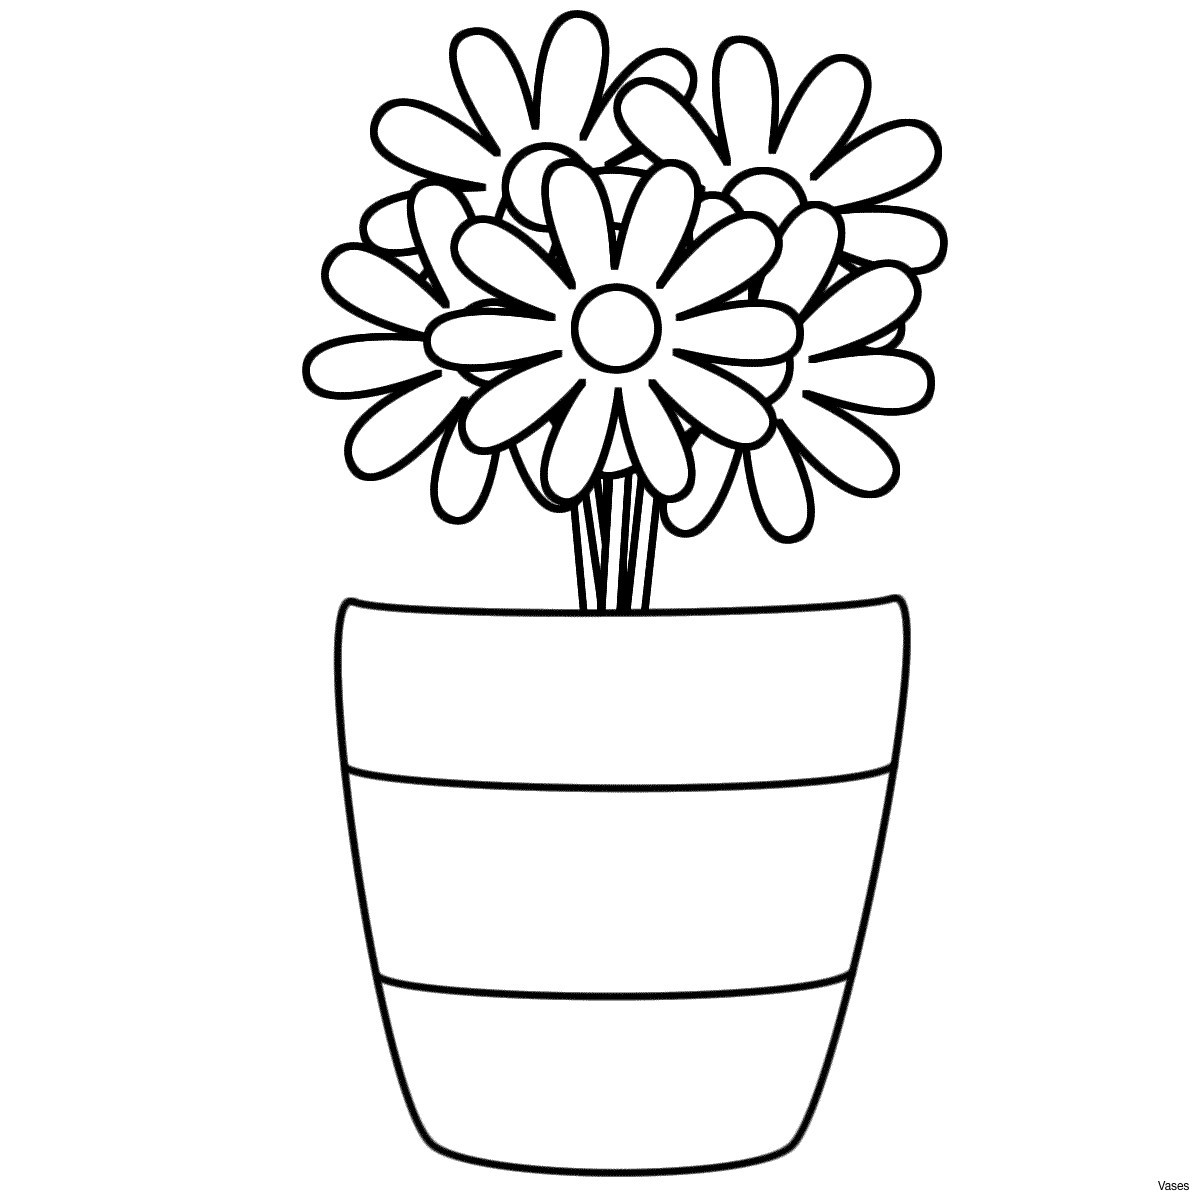 flowers in a vase of care bears coloring pages best of vases flower vase coloring page within care bears coloring pages best of vases flower vase coloring page pages flowers in a top